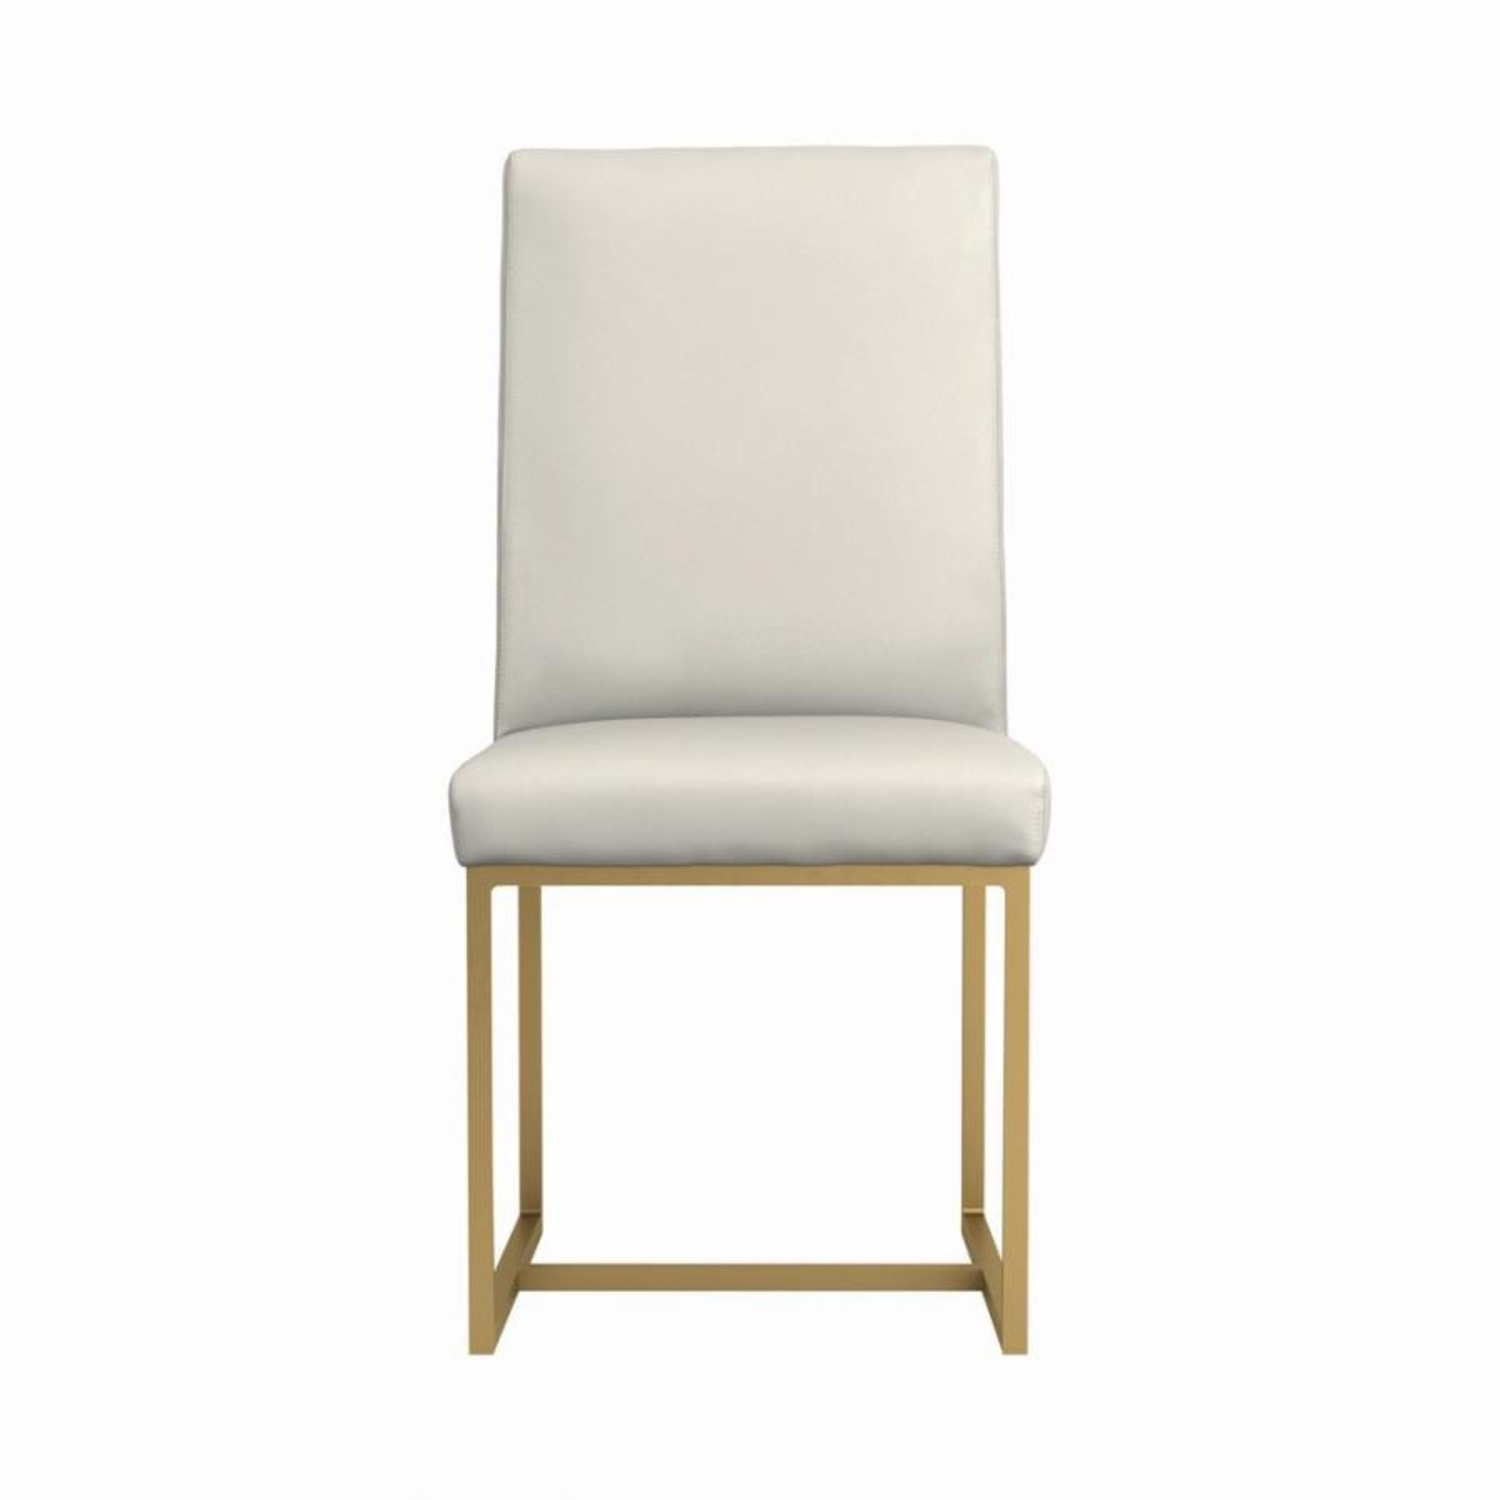 Contemporary Side Chair In Grey Leatherette - image-1